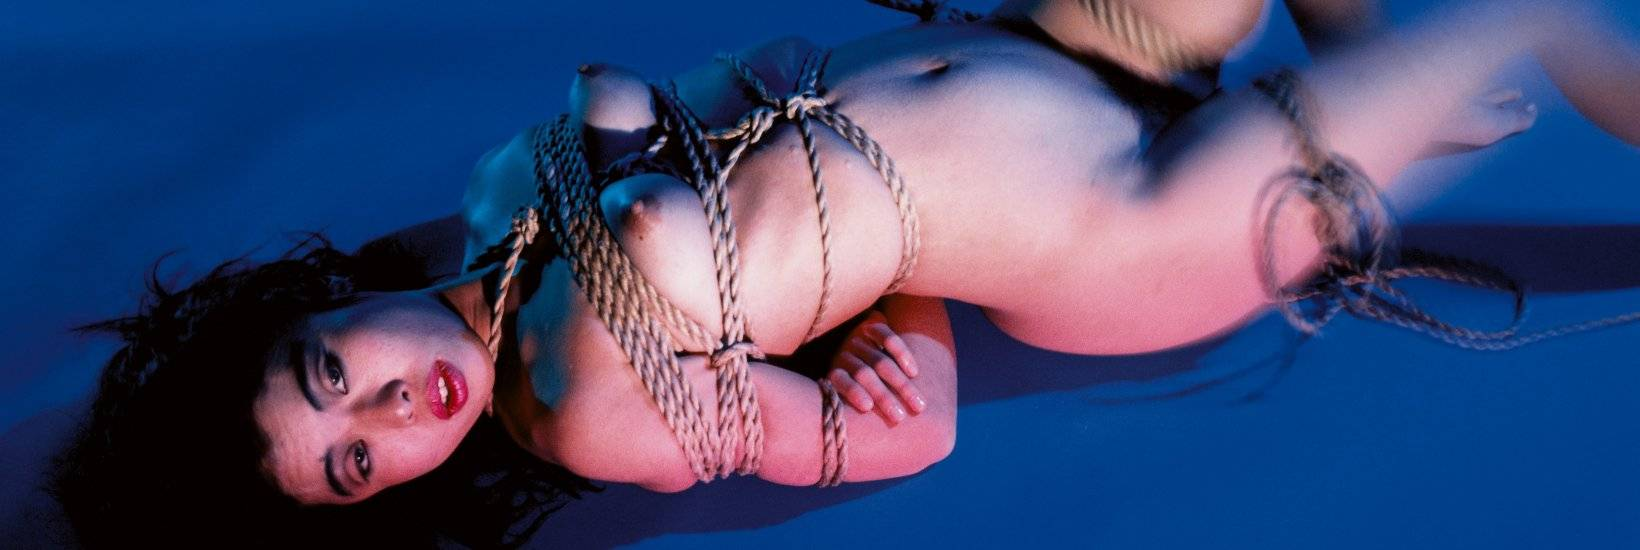 Kinbaku-bi, anyone? -